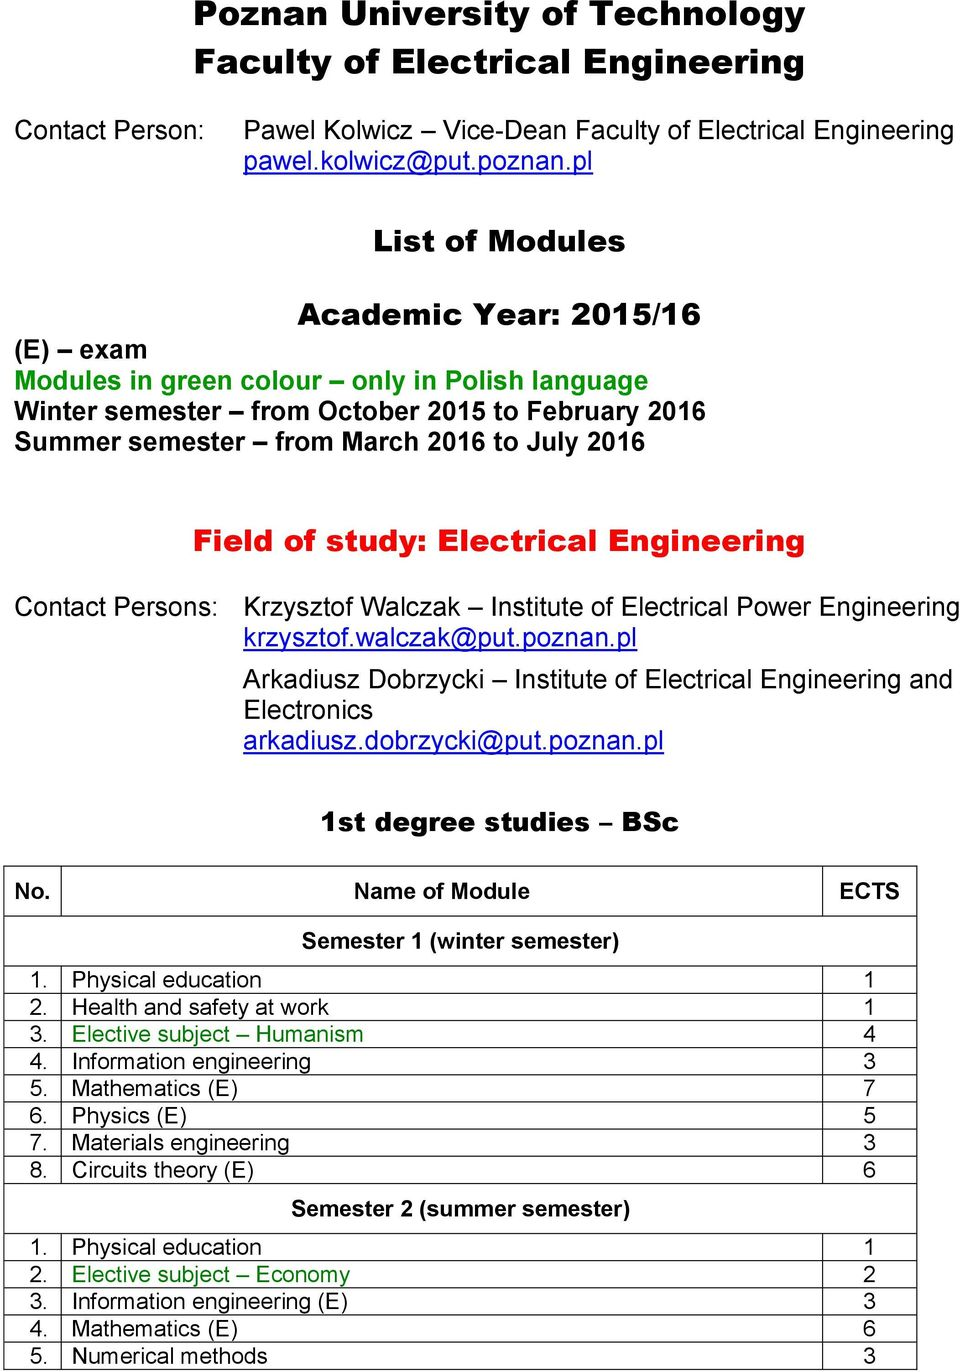 Field of study: Electrical Engineering Contact Persons: Krzysztof Walczak Institute of Electrical Power Engineering krzysztof.walczak@put.poznan.